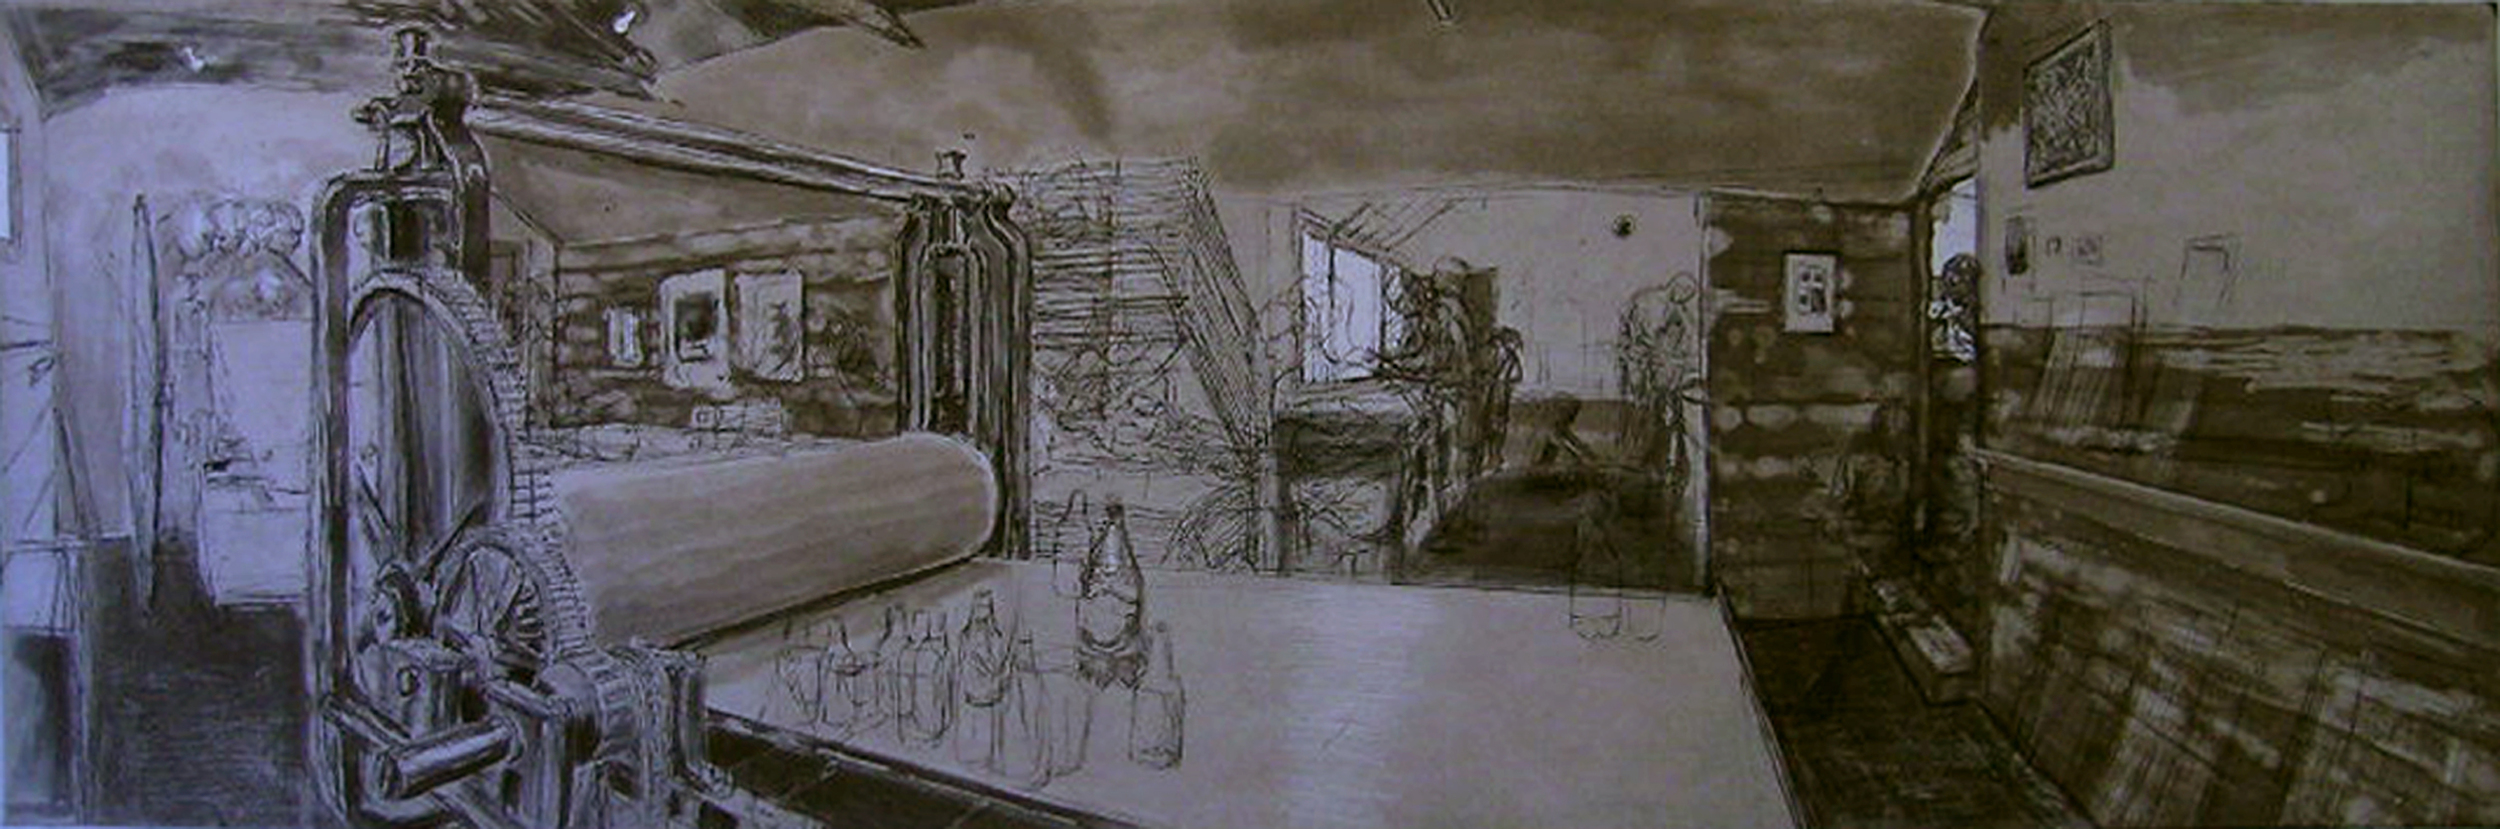 Wingate Studio with Aldo's Press (Threnody for R.L. Burnside),  2005 etching, ed. 2/15, 12 x 36 inches